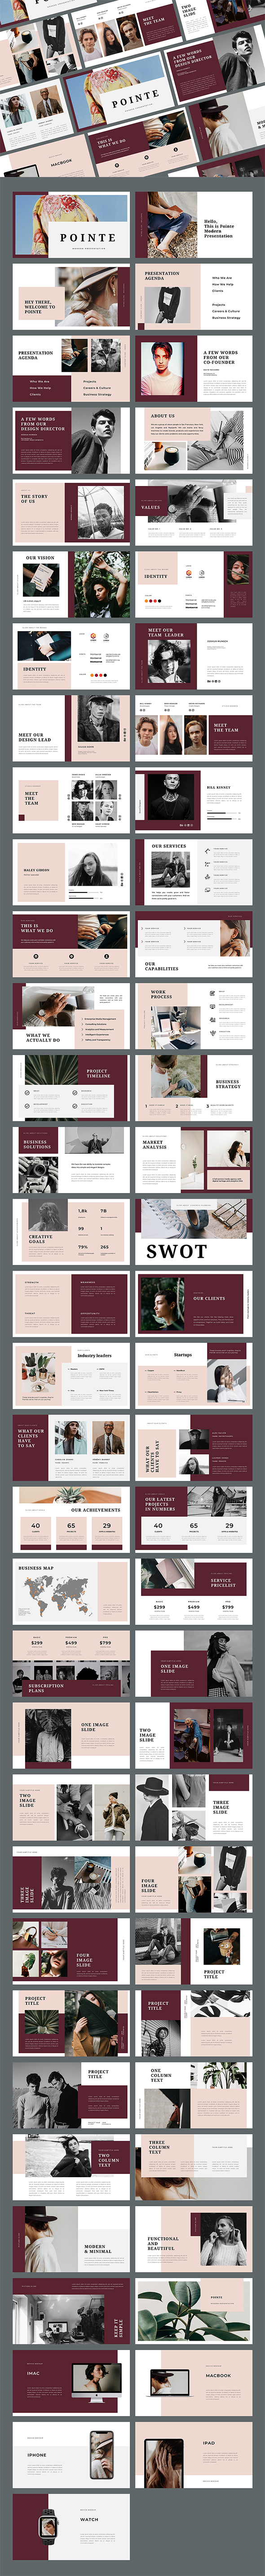 Pointe - Business PowerPoint Template